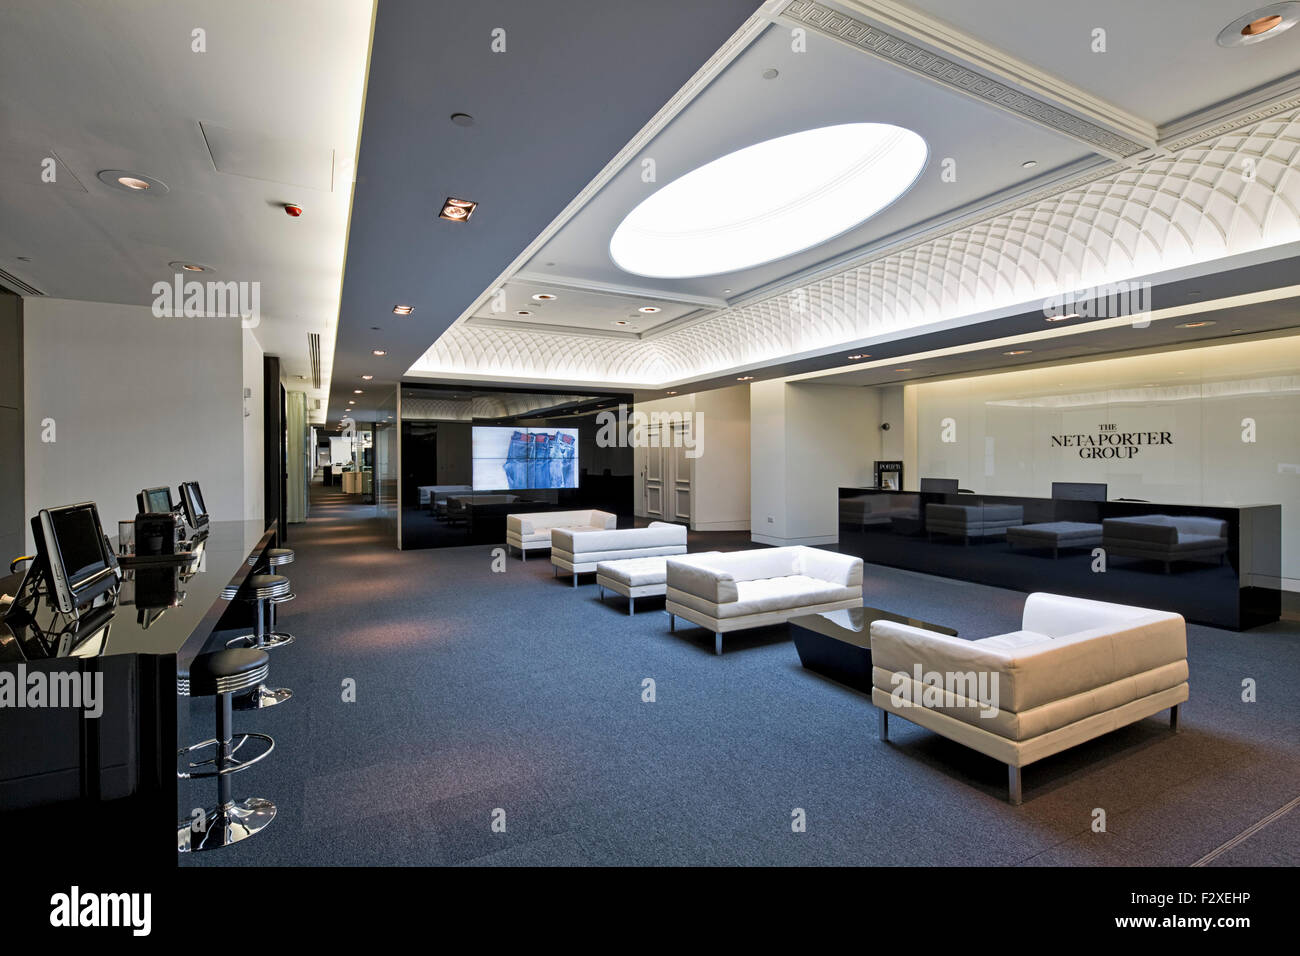 Le Meilleur Reception Net A Porter Offices At The Westfield Centre Ce Mois Ci